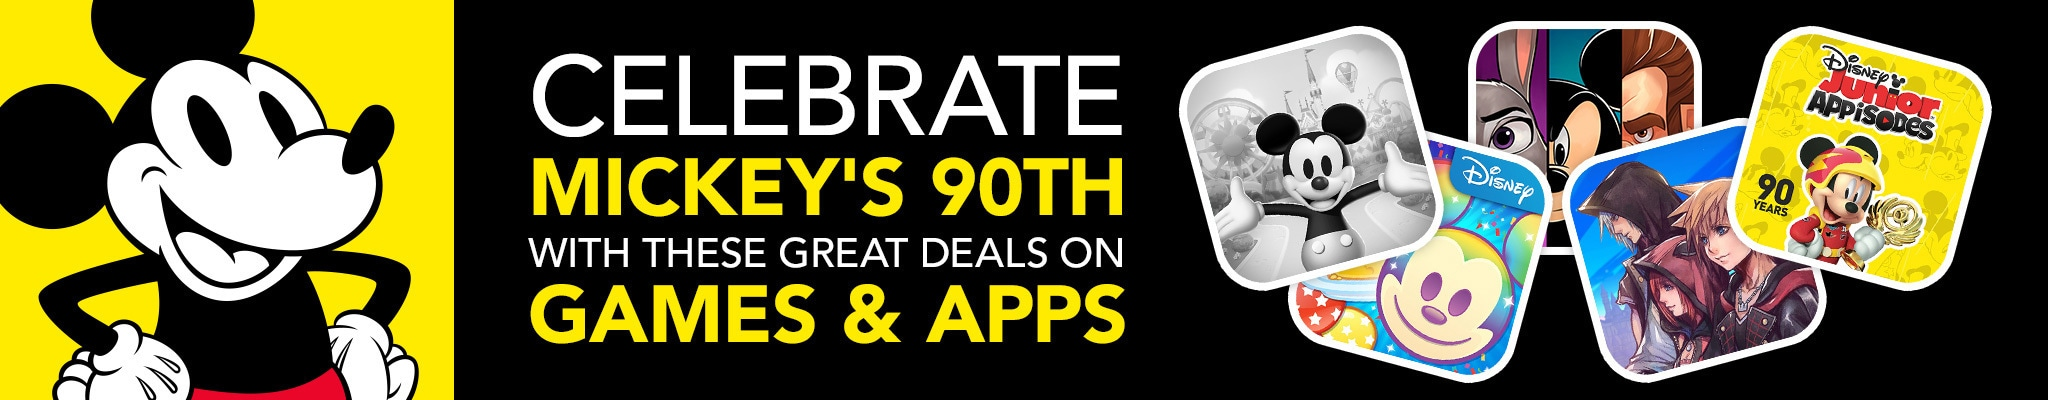 Celebrate Mickey's 90th with these great deals on games and apps